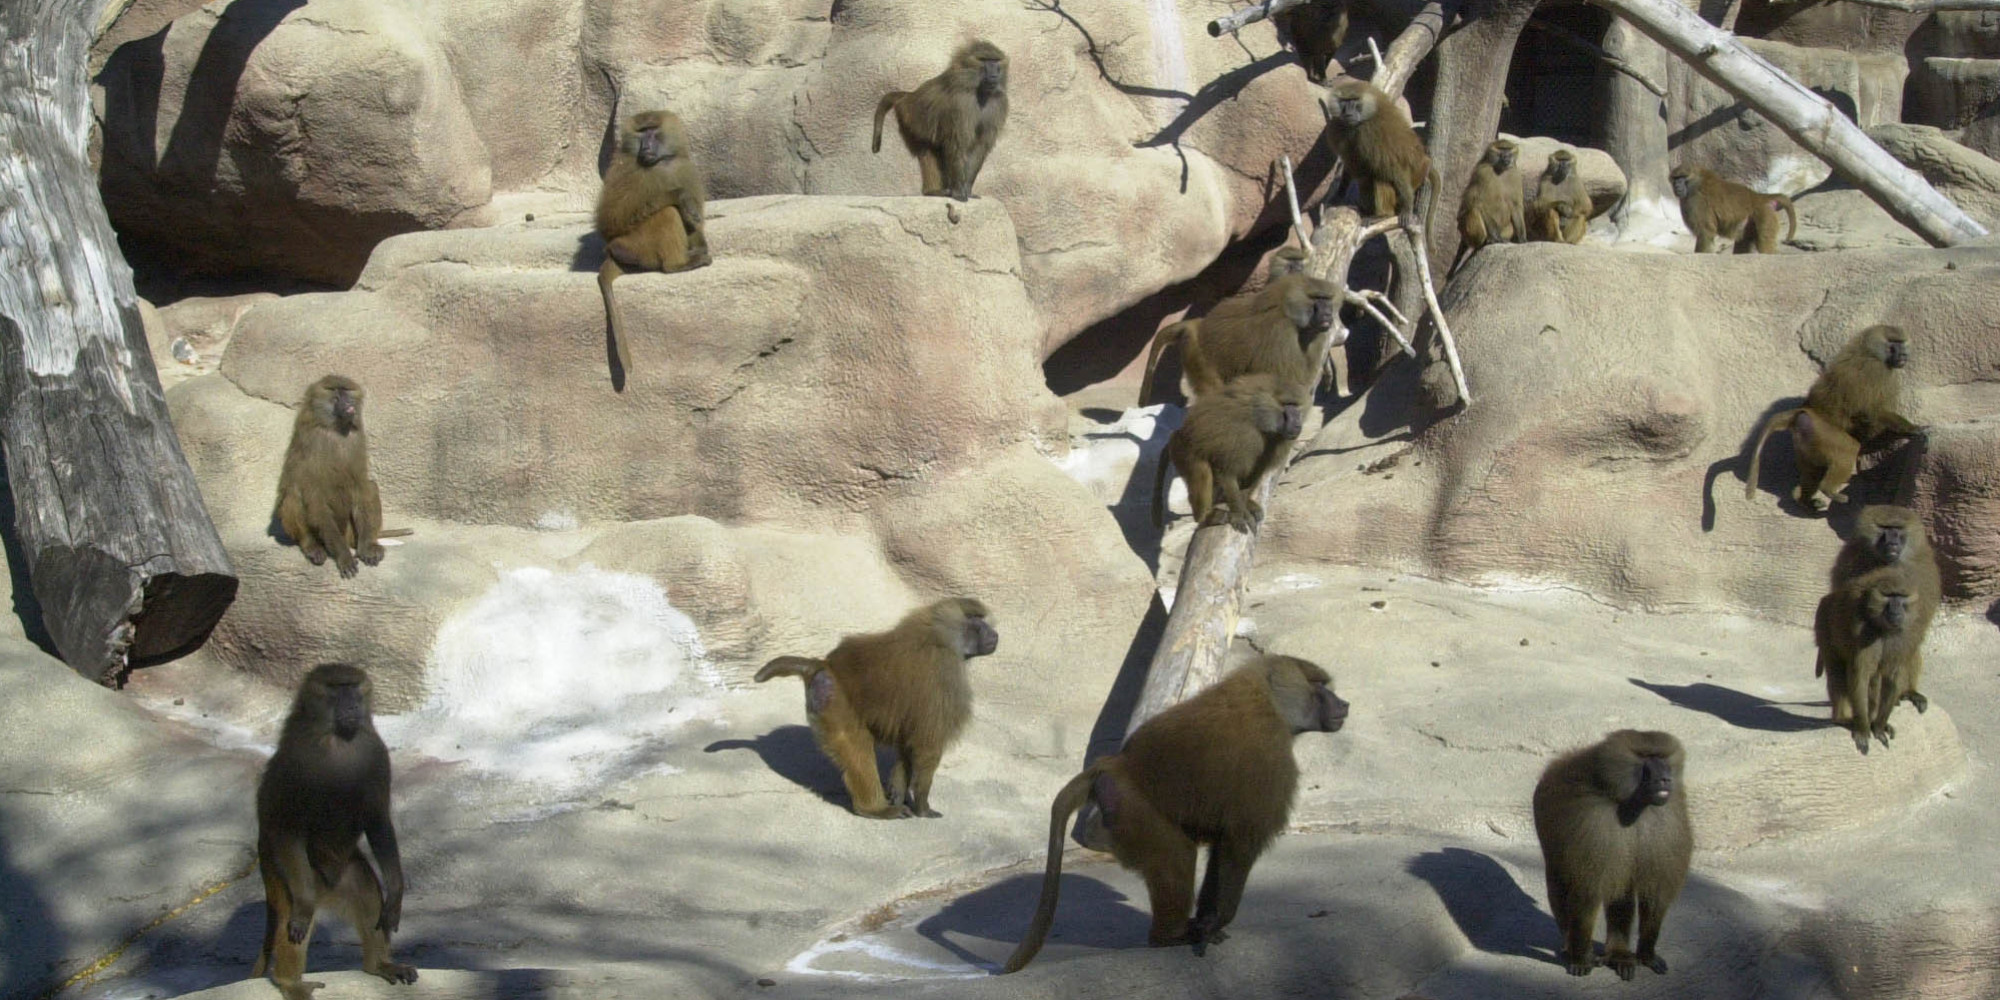 Brookfield Zoos Baboon Island Closed After Over Seven Decades